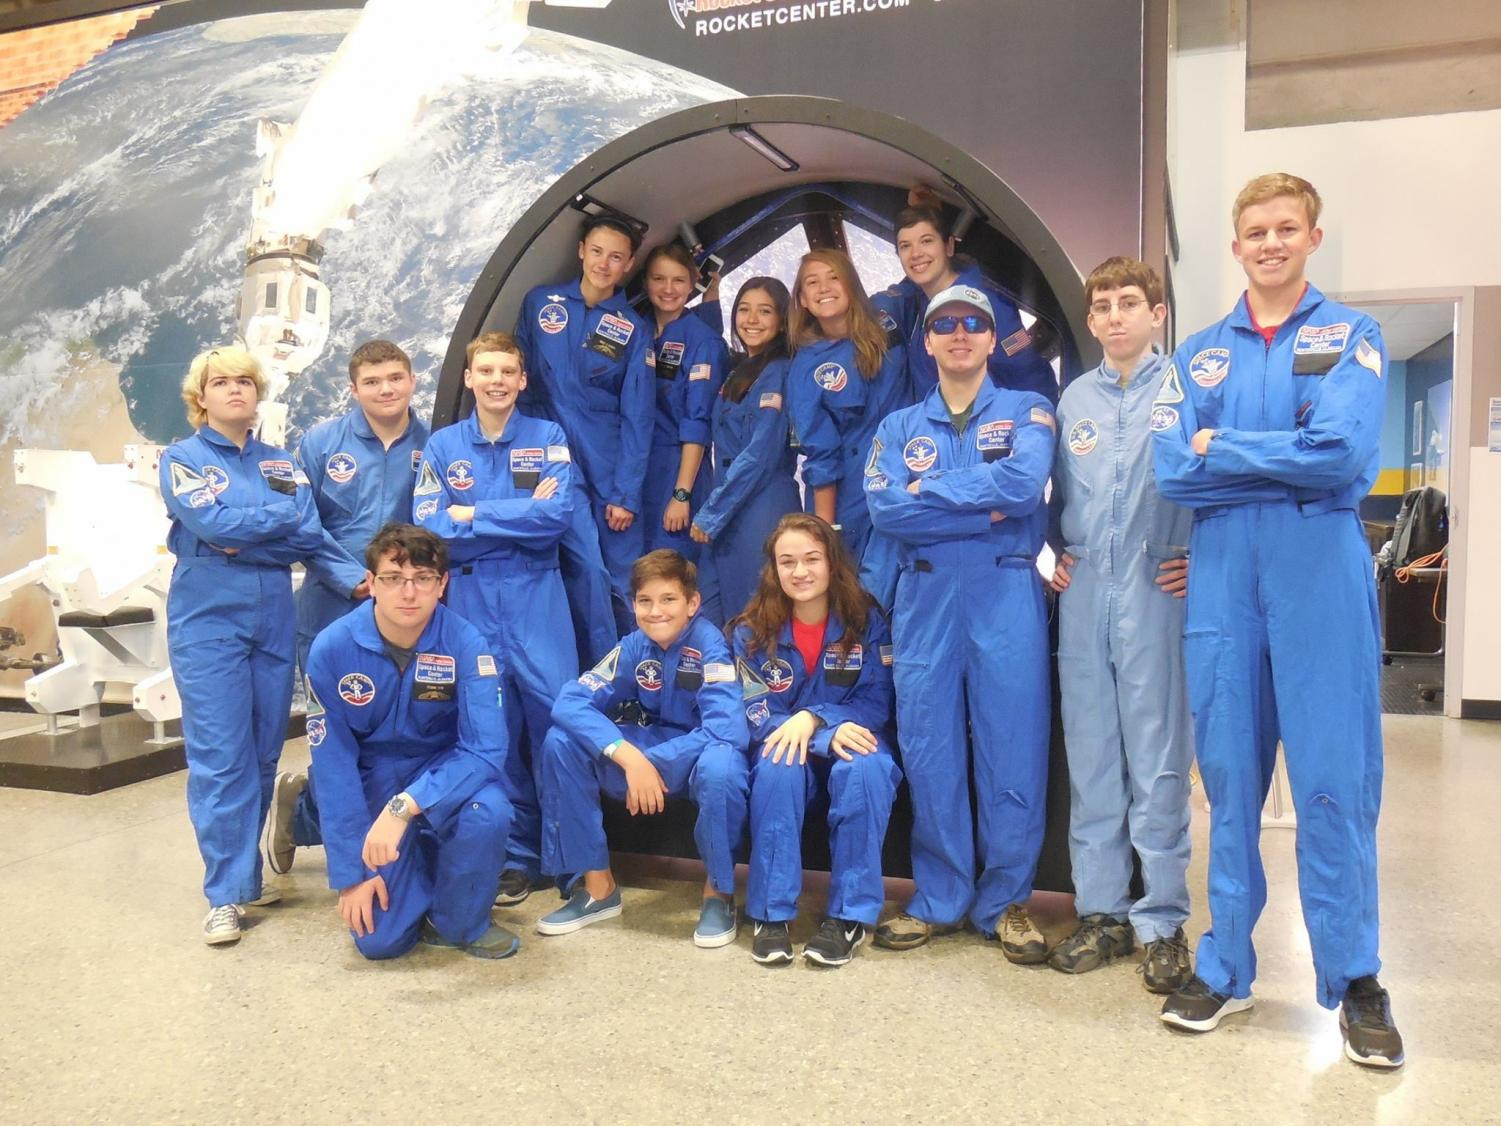 Lauren and friends pose at space camp in Huntsville, Alabama. Stern, who wants to become an astronaut, says that attending space camp was just one factor that led to her to follow her career ambition.